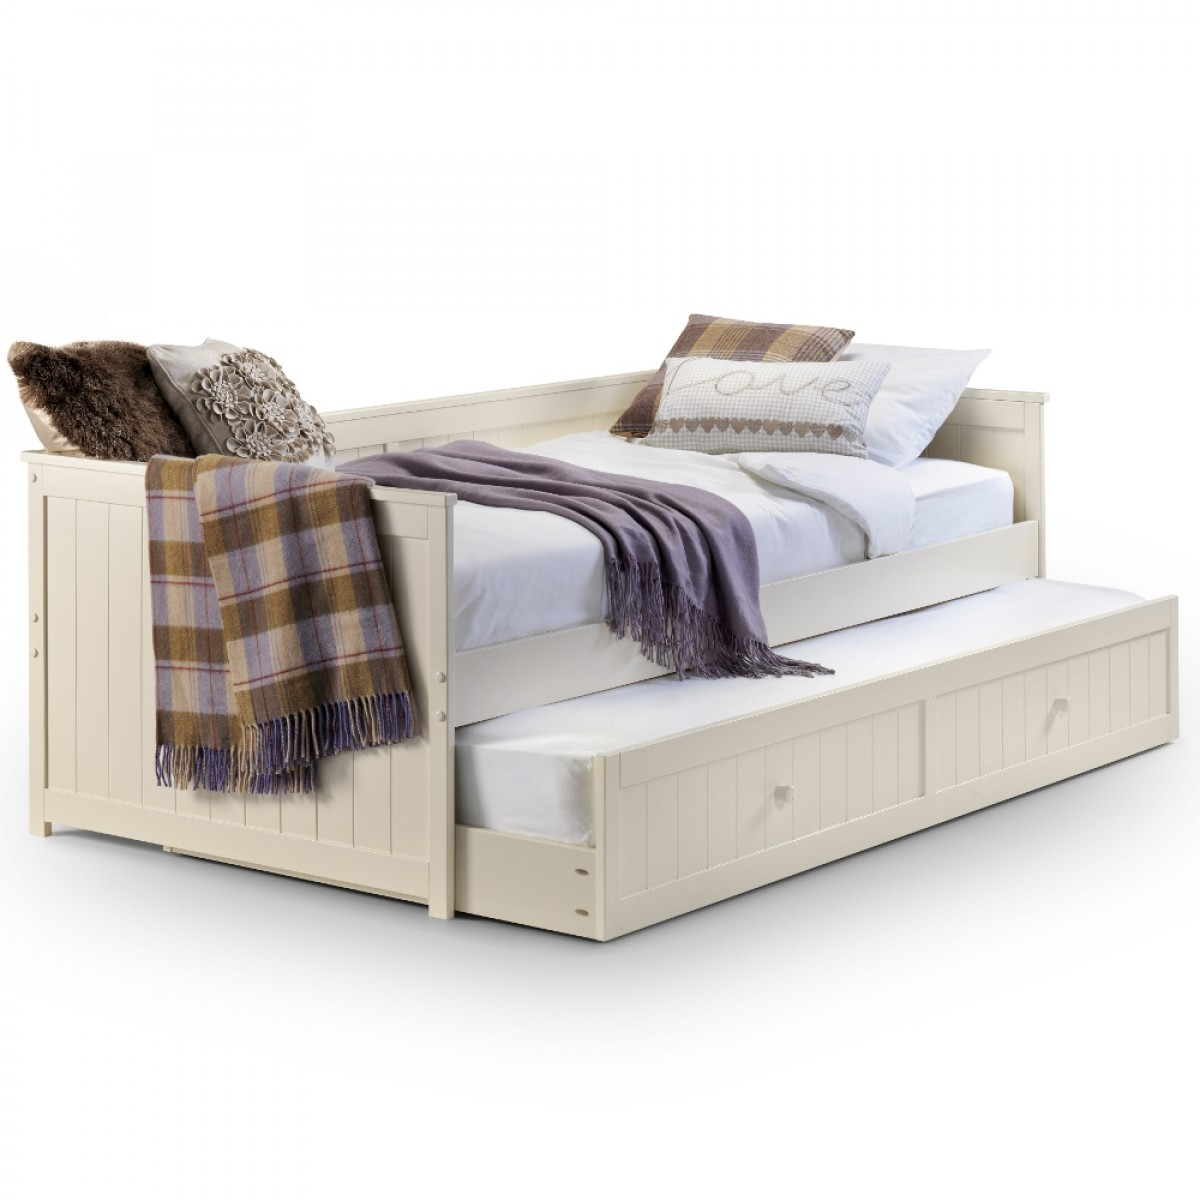 Jessica Stone White Wooden Guest Bed and Trundle - 3ft Single